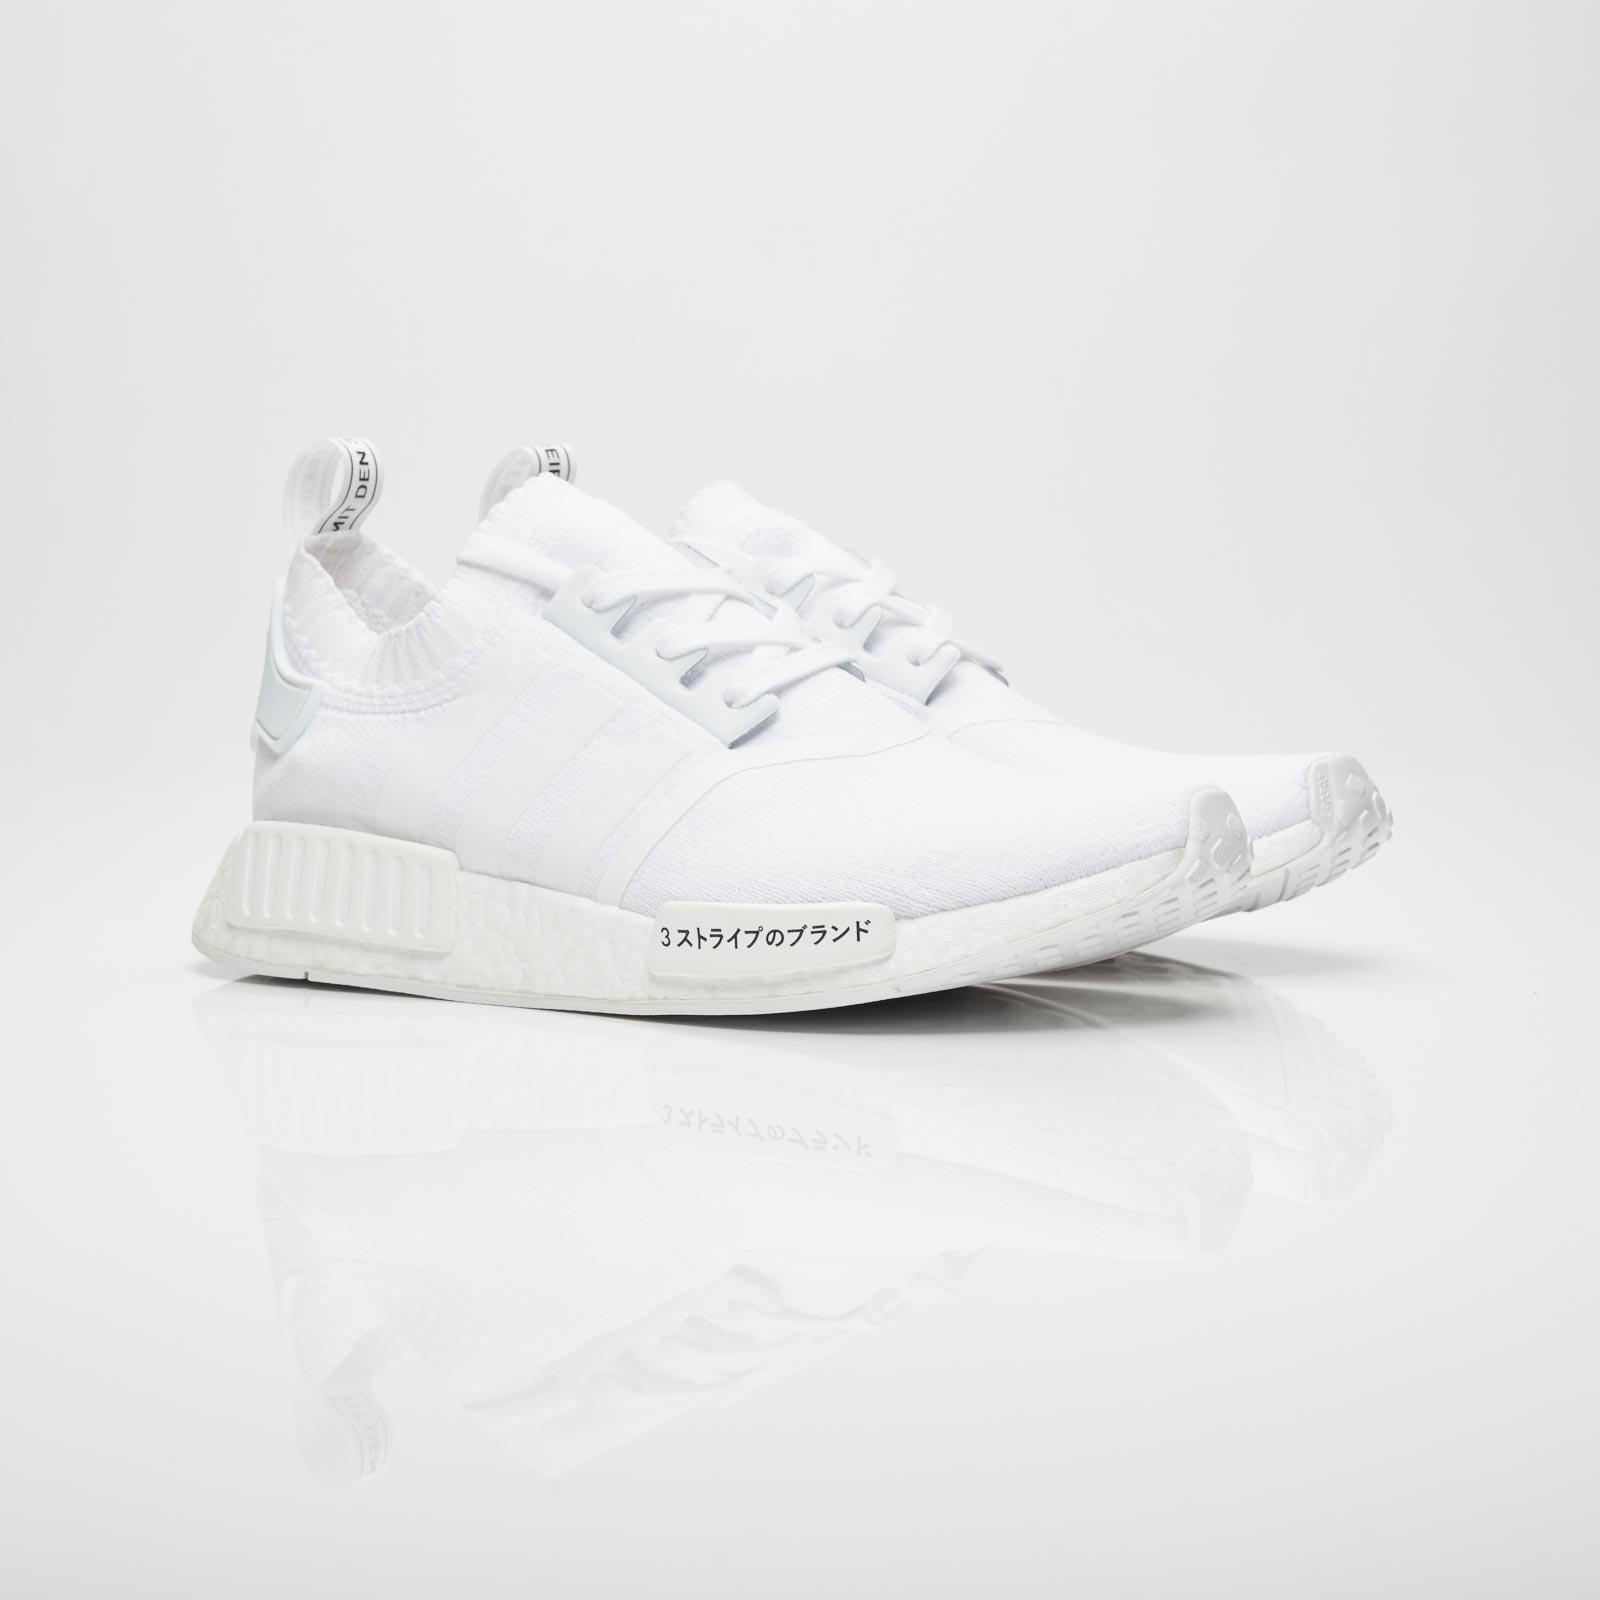 Adidas Baskets Nmd_r1 - Blanc 9ibDcl4pPp